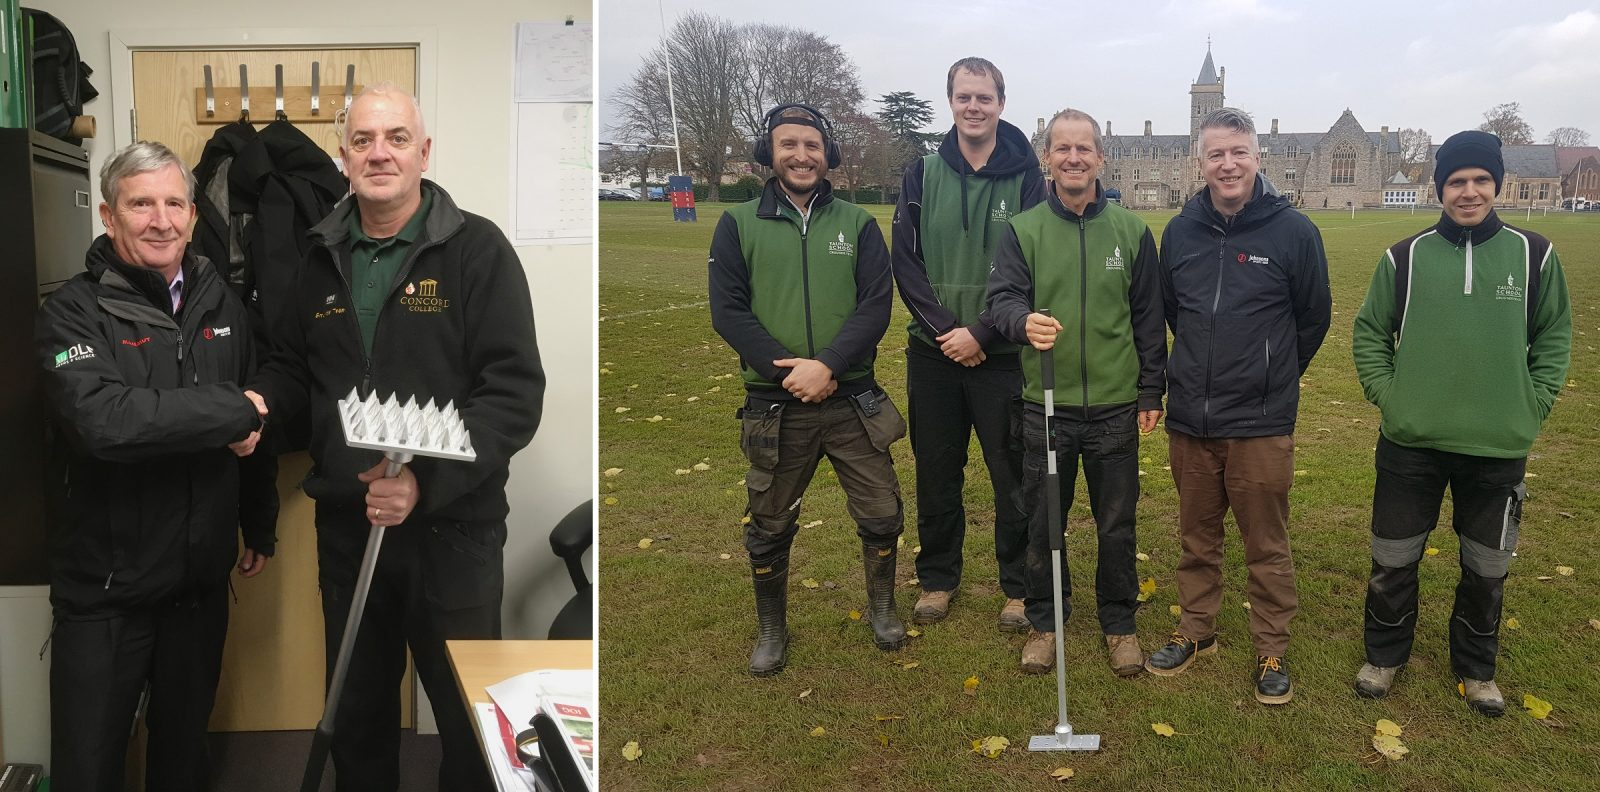 Paul Humphreys at Concord College, Shrewsbury and Taunton Schools' Mark Jolliffe have been announced as the winners of the DLF/Johnsons Sports Seed ForthRoots Competition at SALTEX 2019.